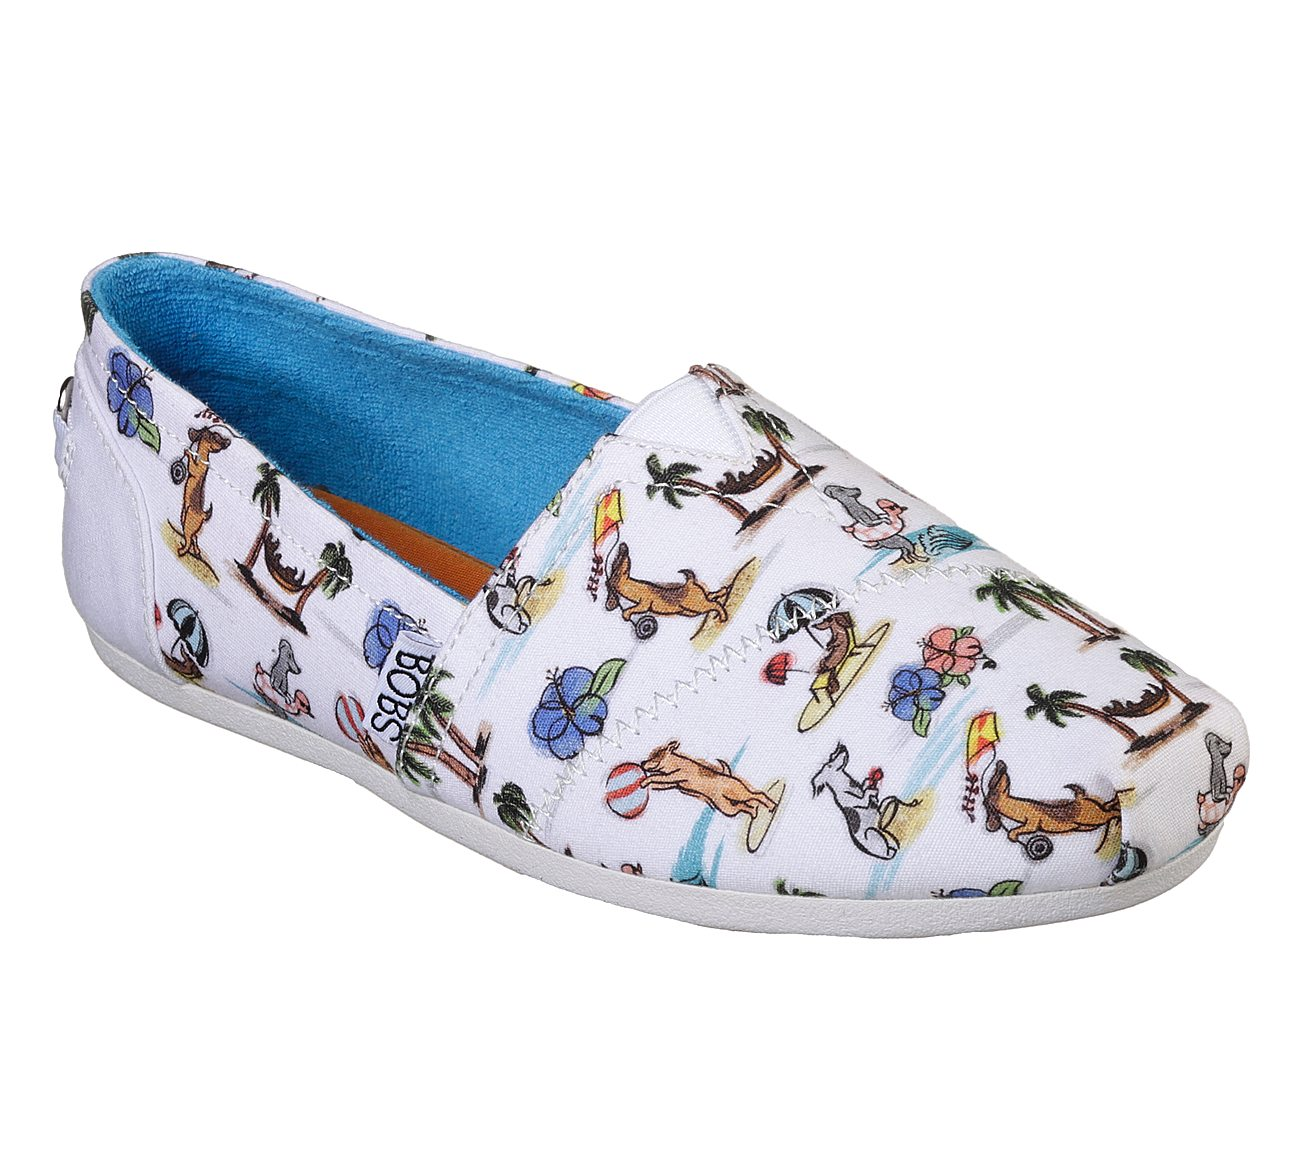 cbcabbd75fc6 Buy SKECHERS BOBS Plush - Playa Pups BOBS Shoes only $63.00